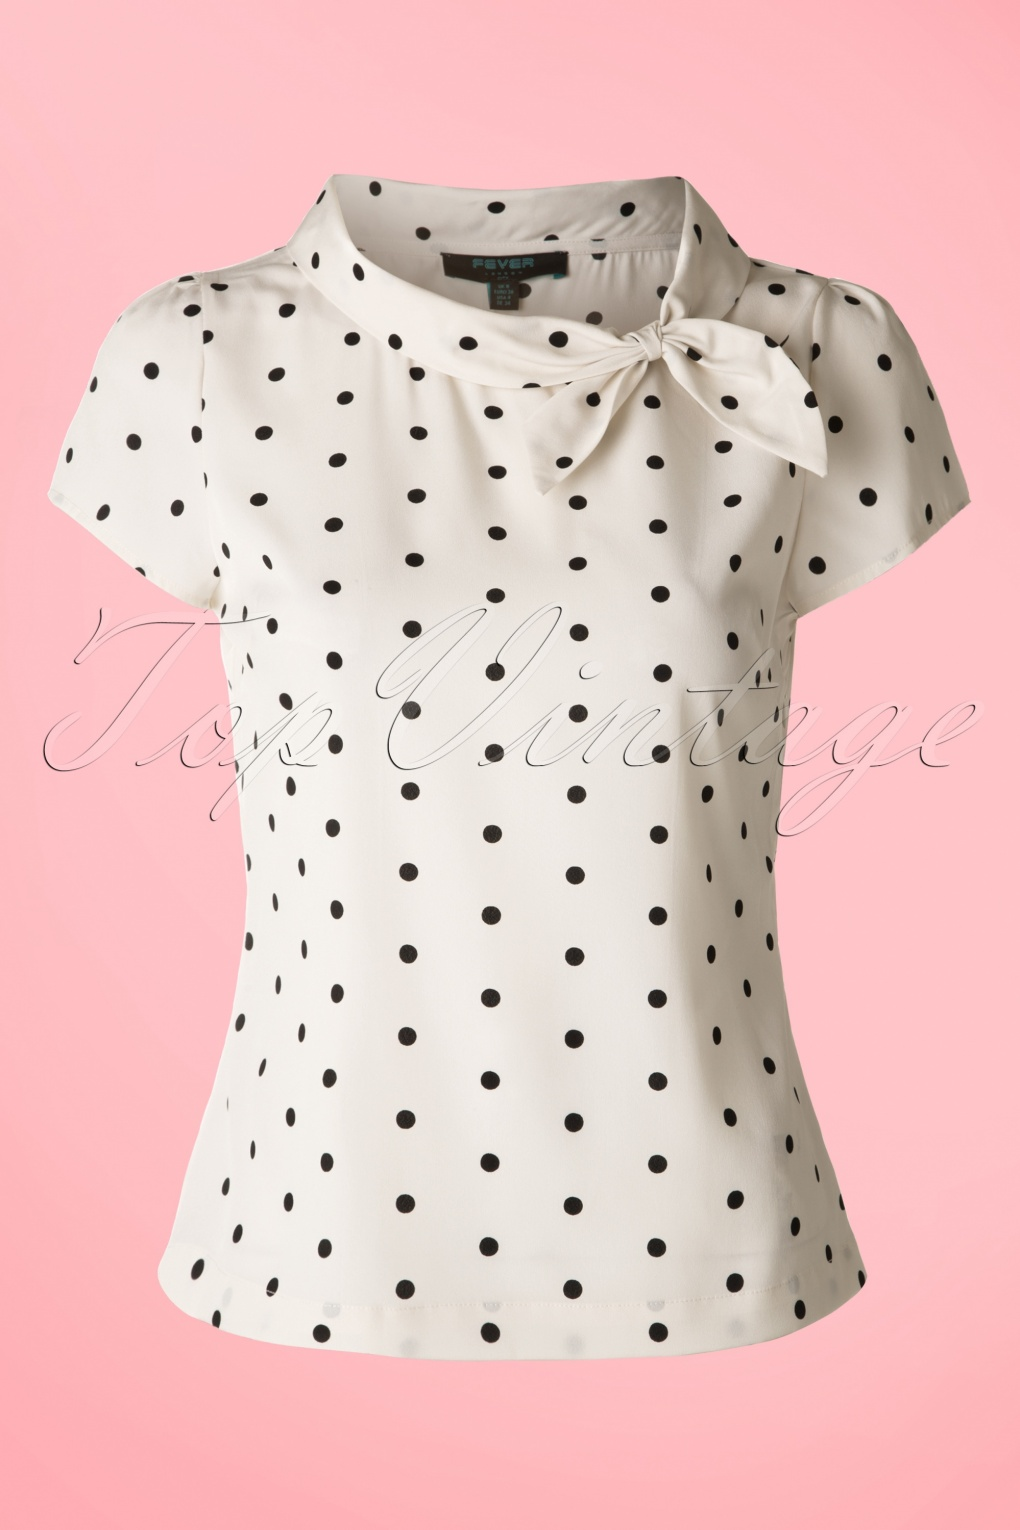 1950s Rockabilly & Pinup Tops, Shirts, Blouses 50s Garland Polkadot Top in Cream £47.21 AT vintagedancer.com